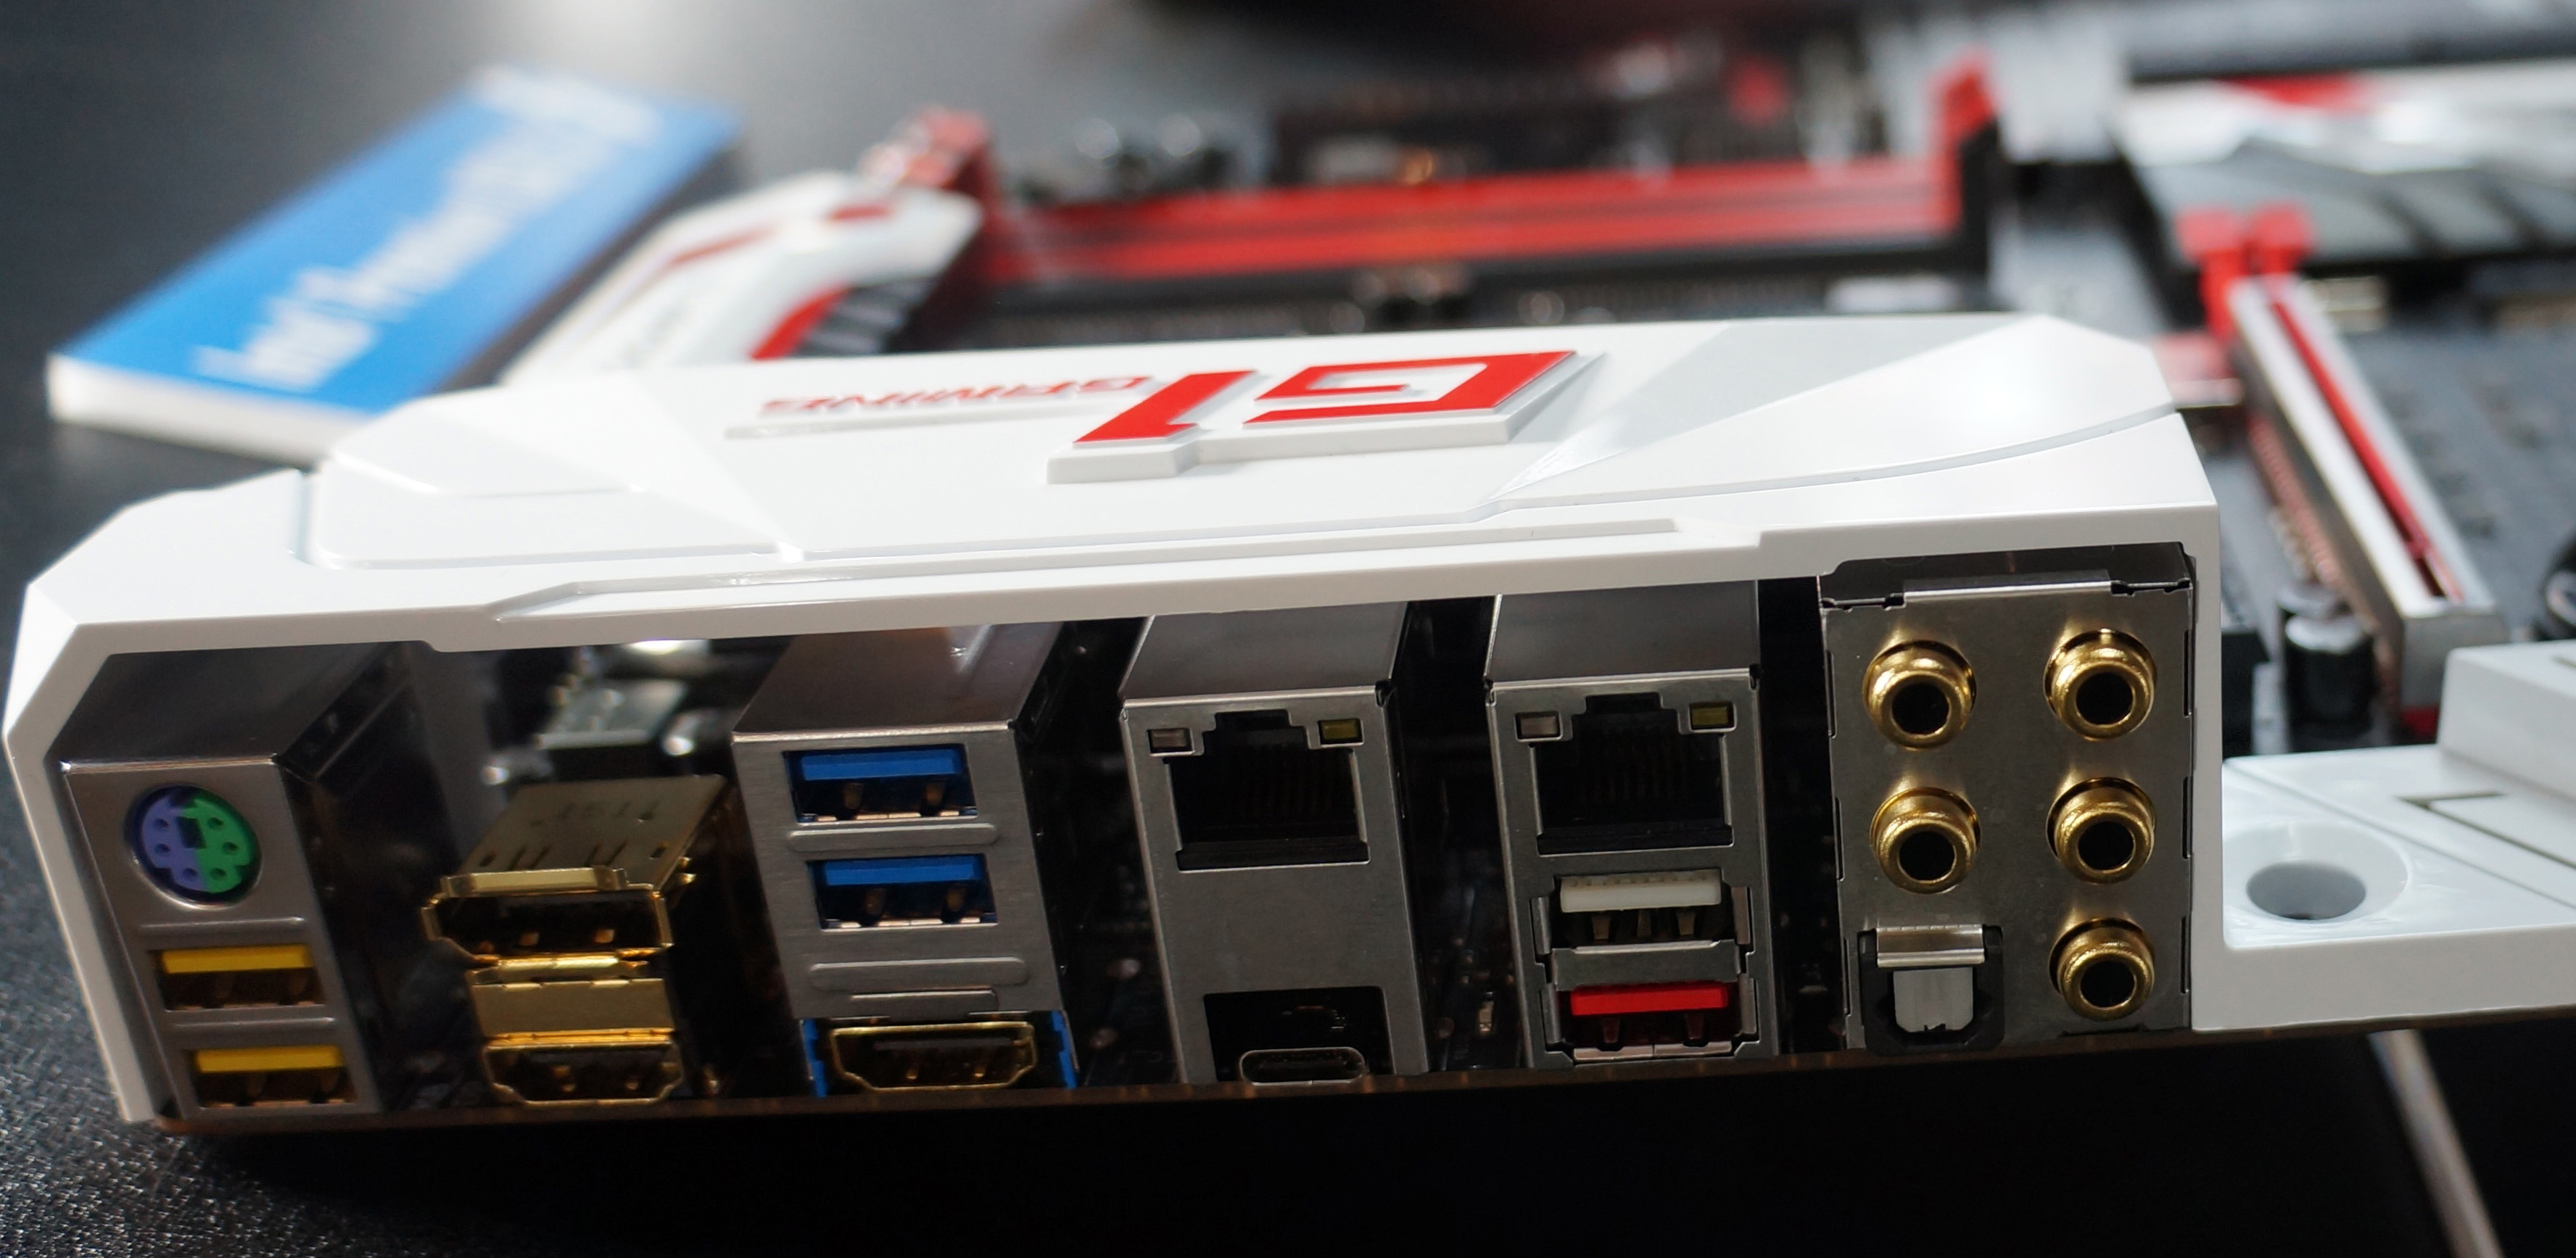 Motherboards with 'Killer' network adapters aren't worth